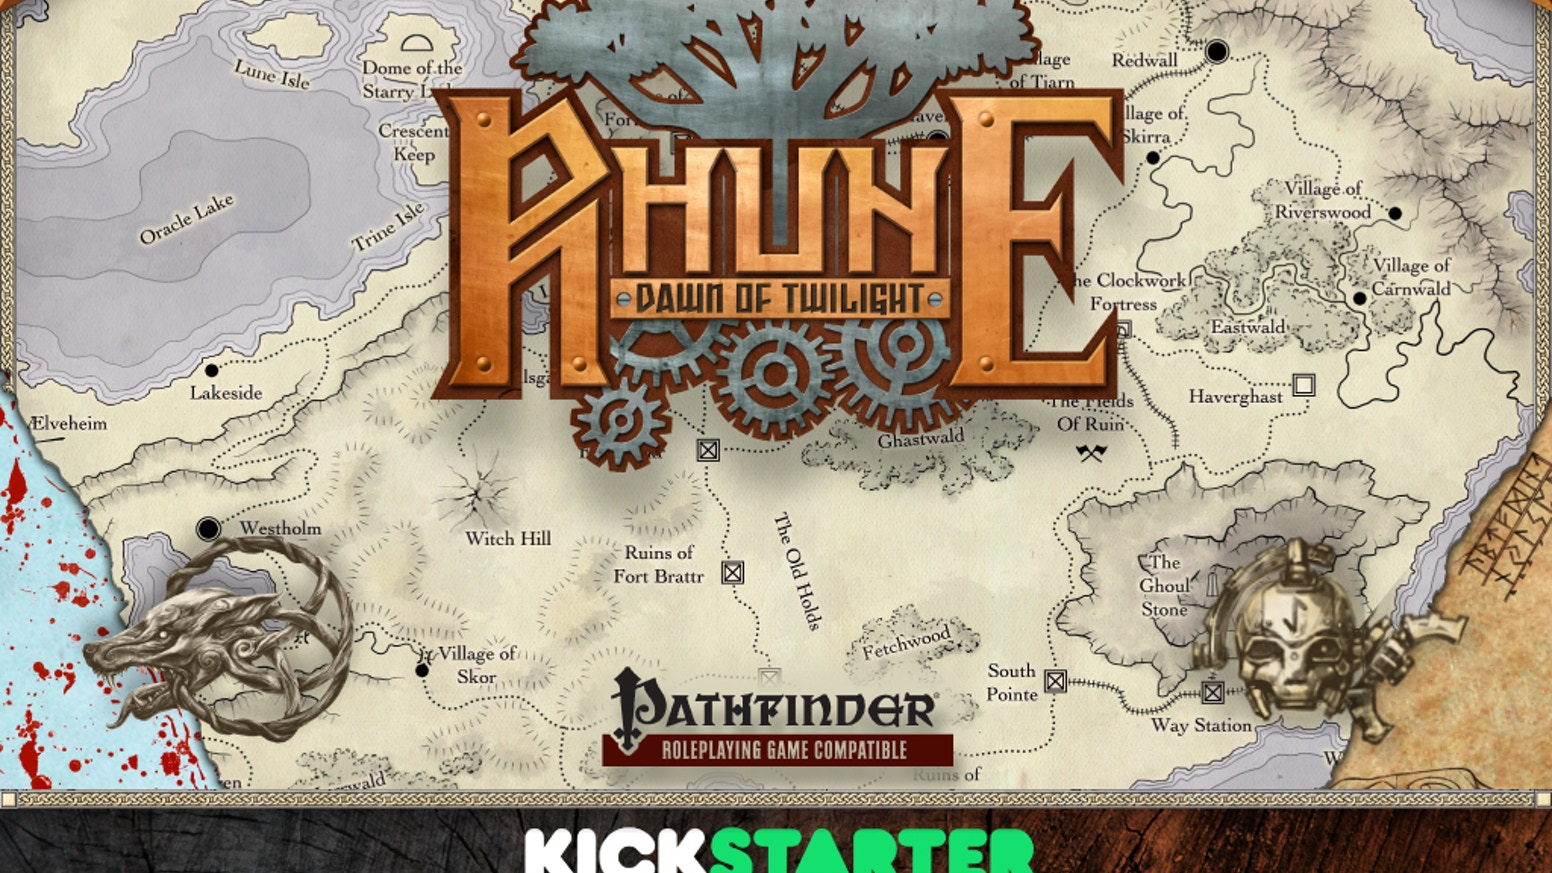 Bringing Stormpunk to the Pathfinder RPG! Inspired by Planescape, the Iron Kingdoms, Tesla, & Norse Myth. Are you ready for Ragnarök?